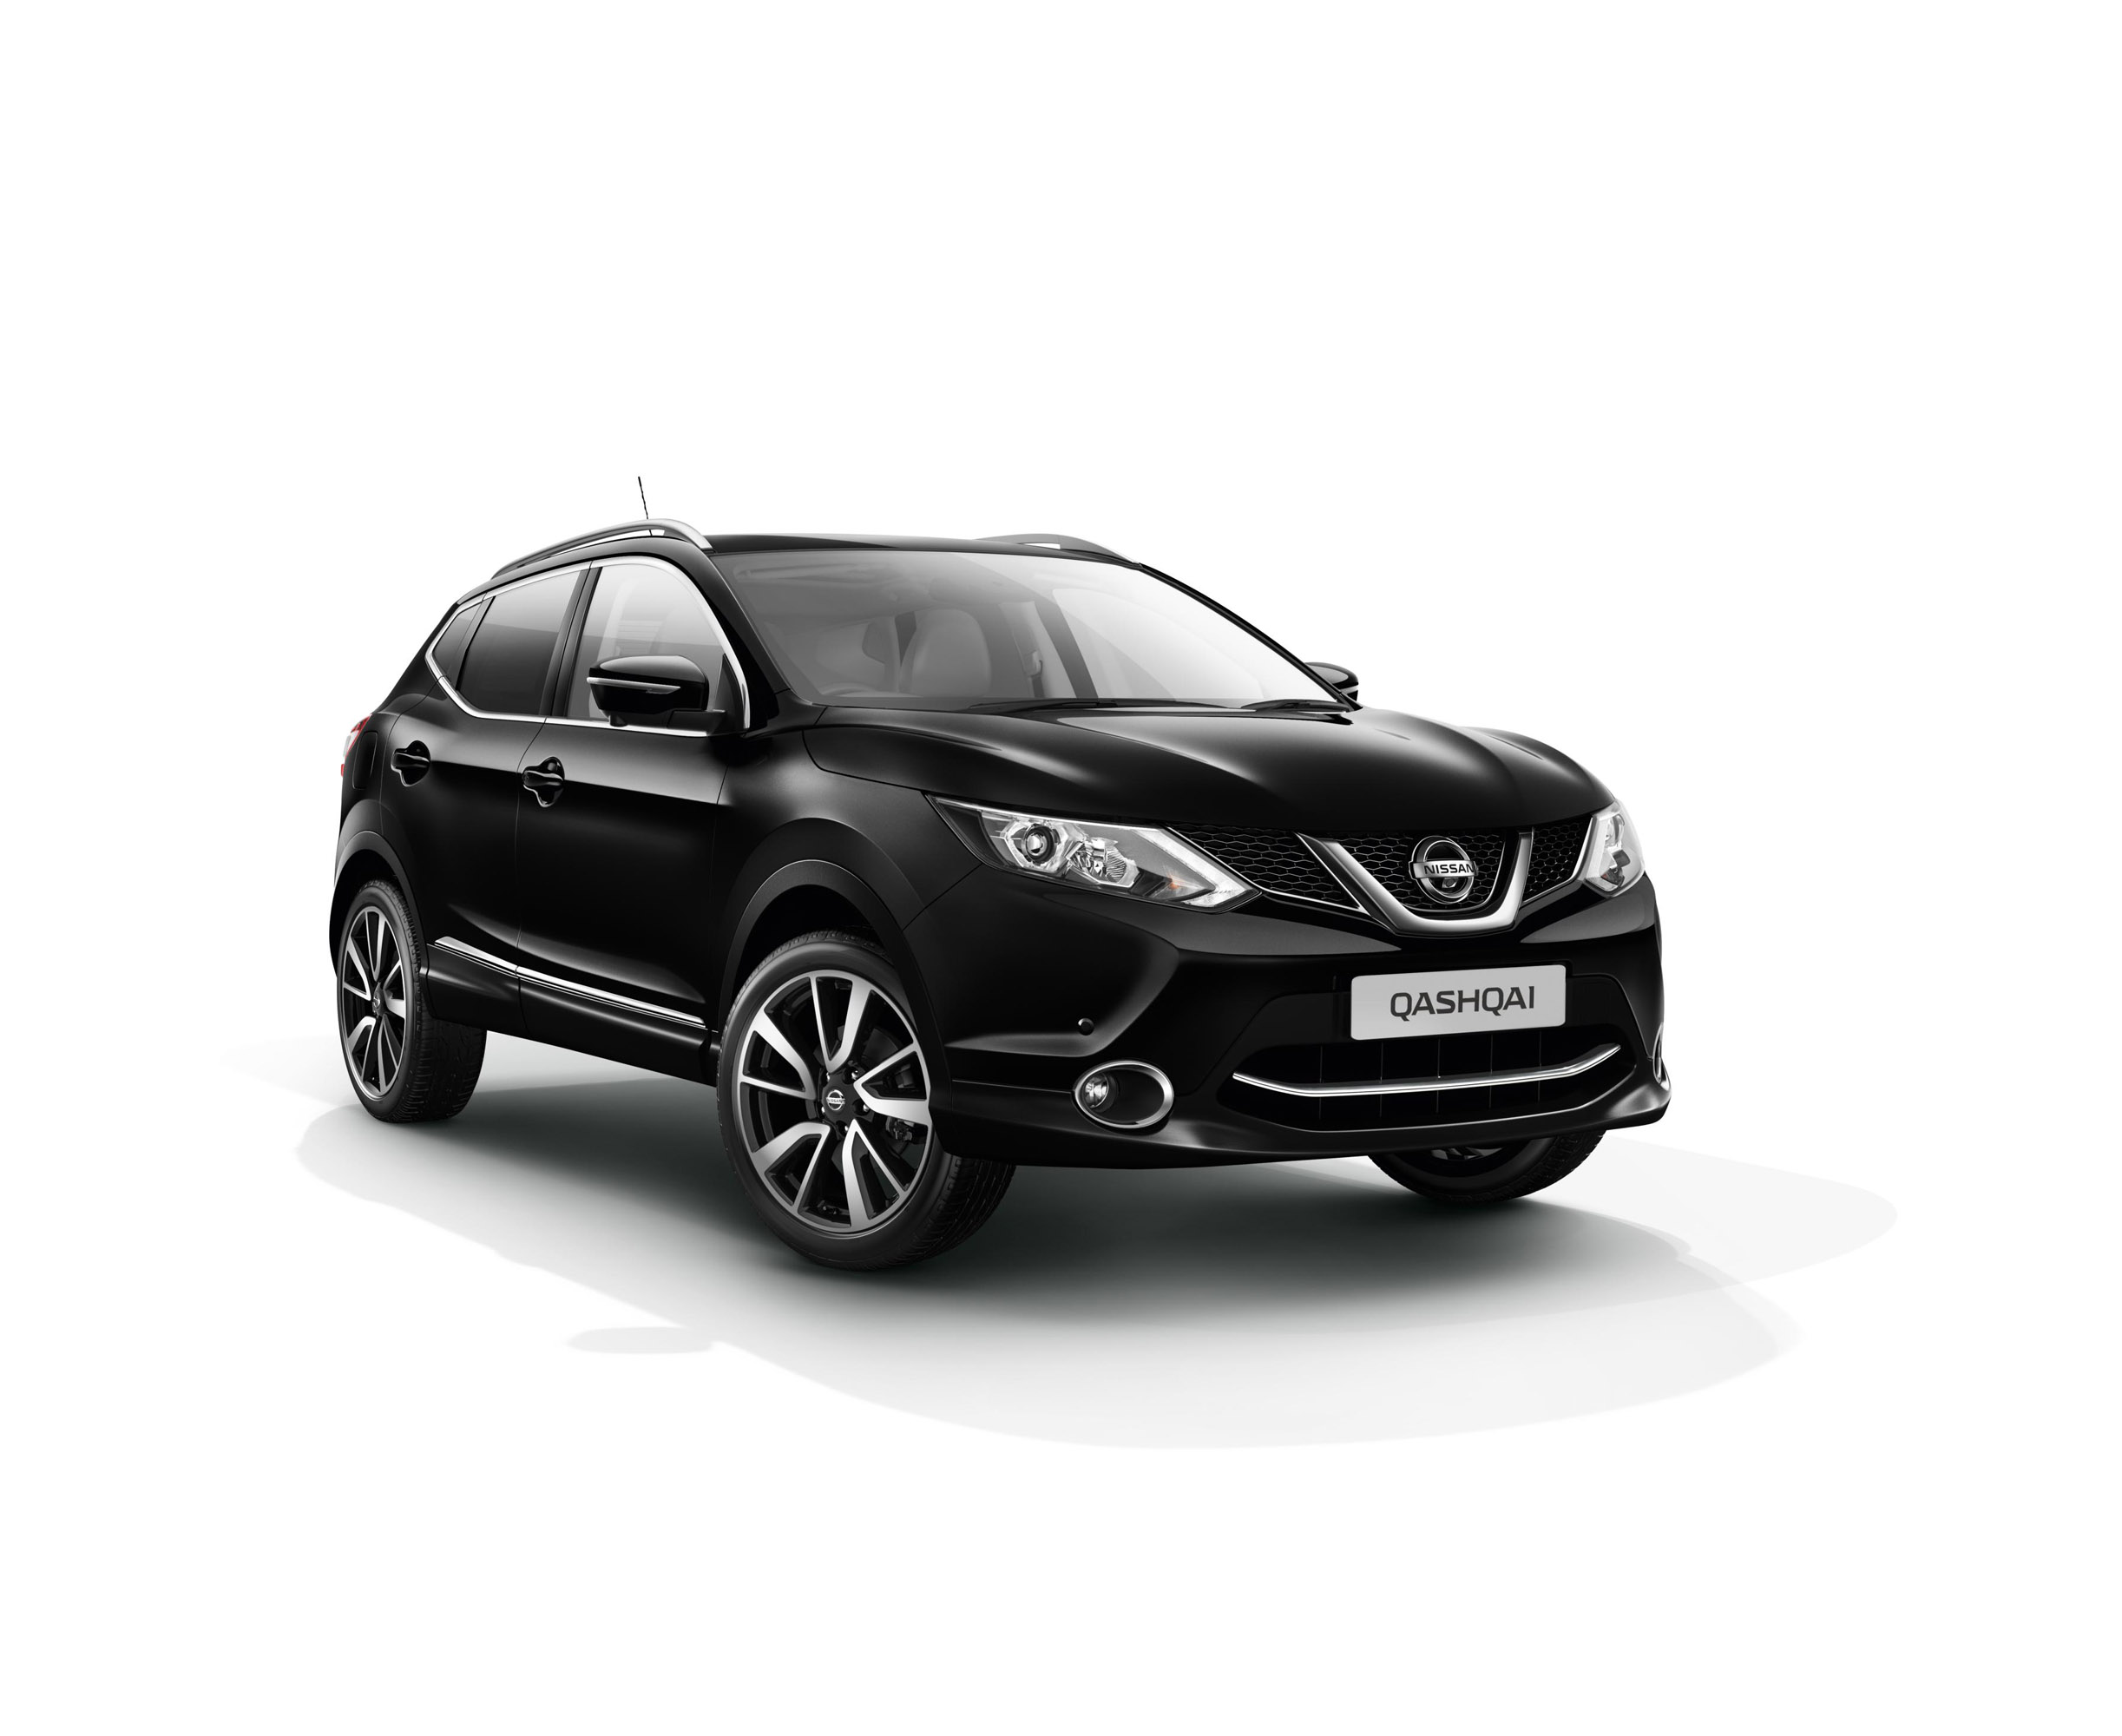 2014 nissan qashqai premier limited edition picture 91489. Black Bedroom Furniture Sets. Home Design Ideas